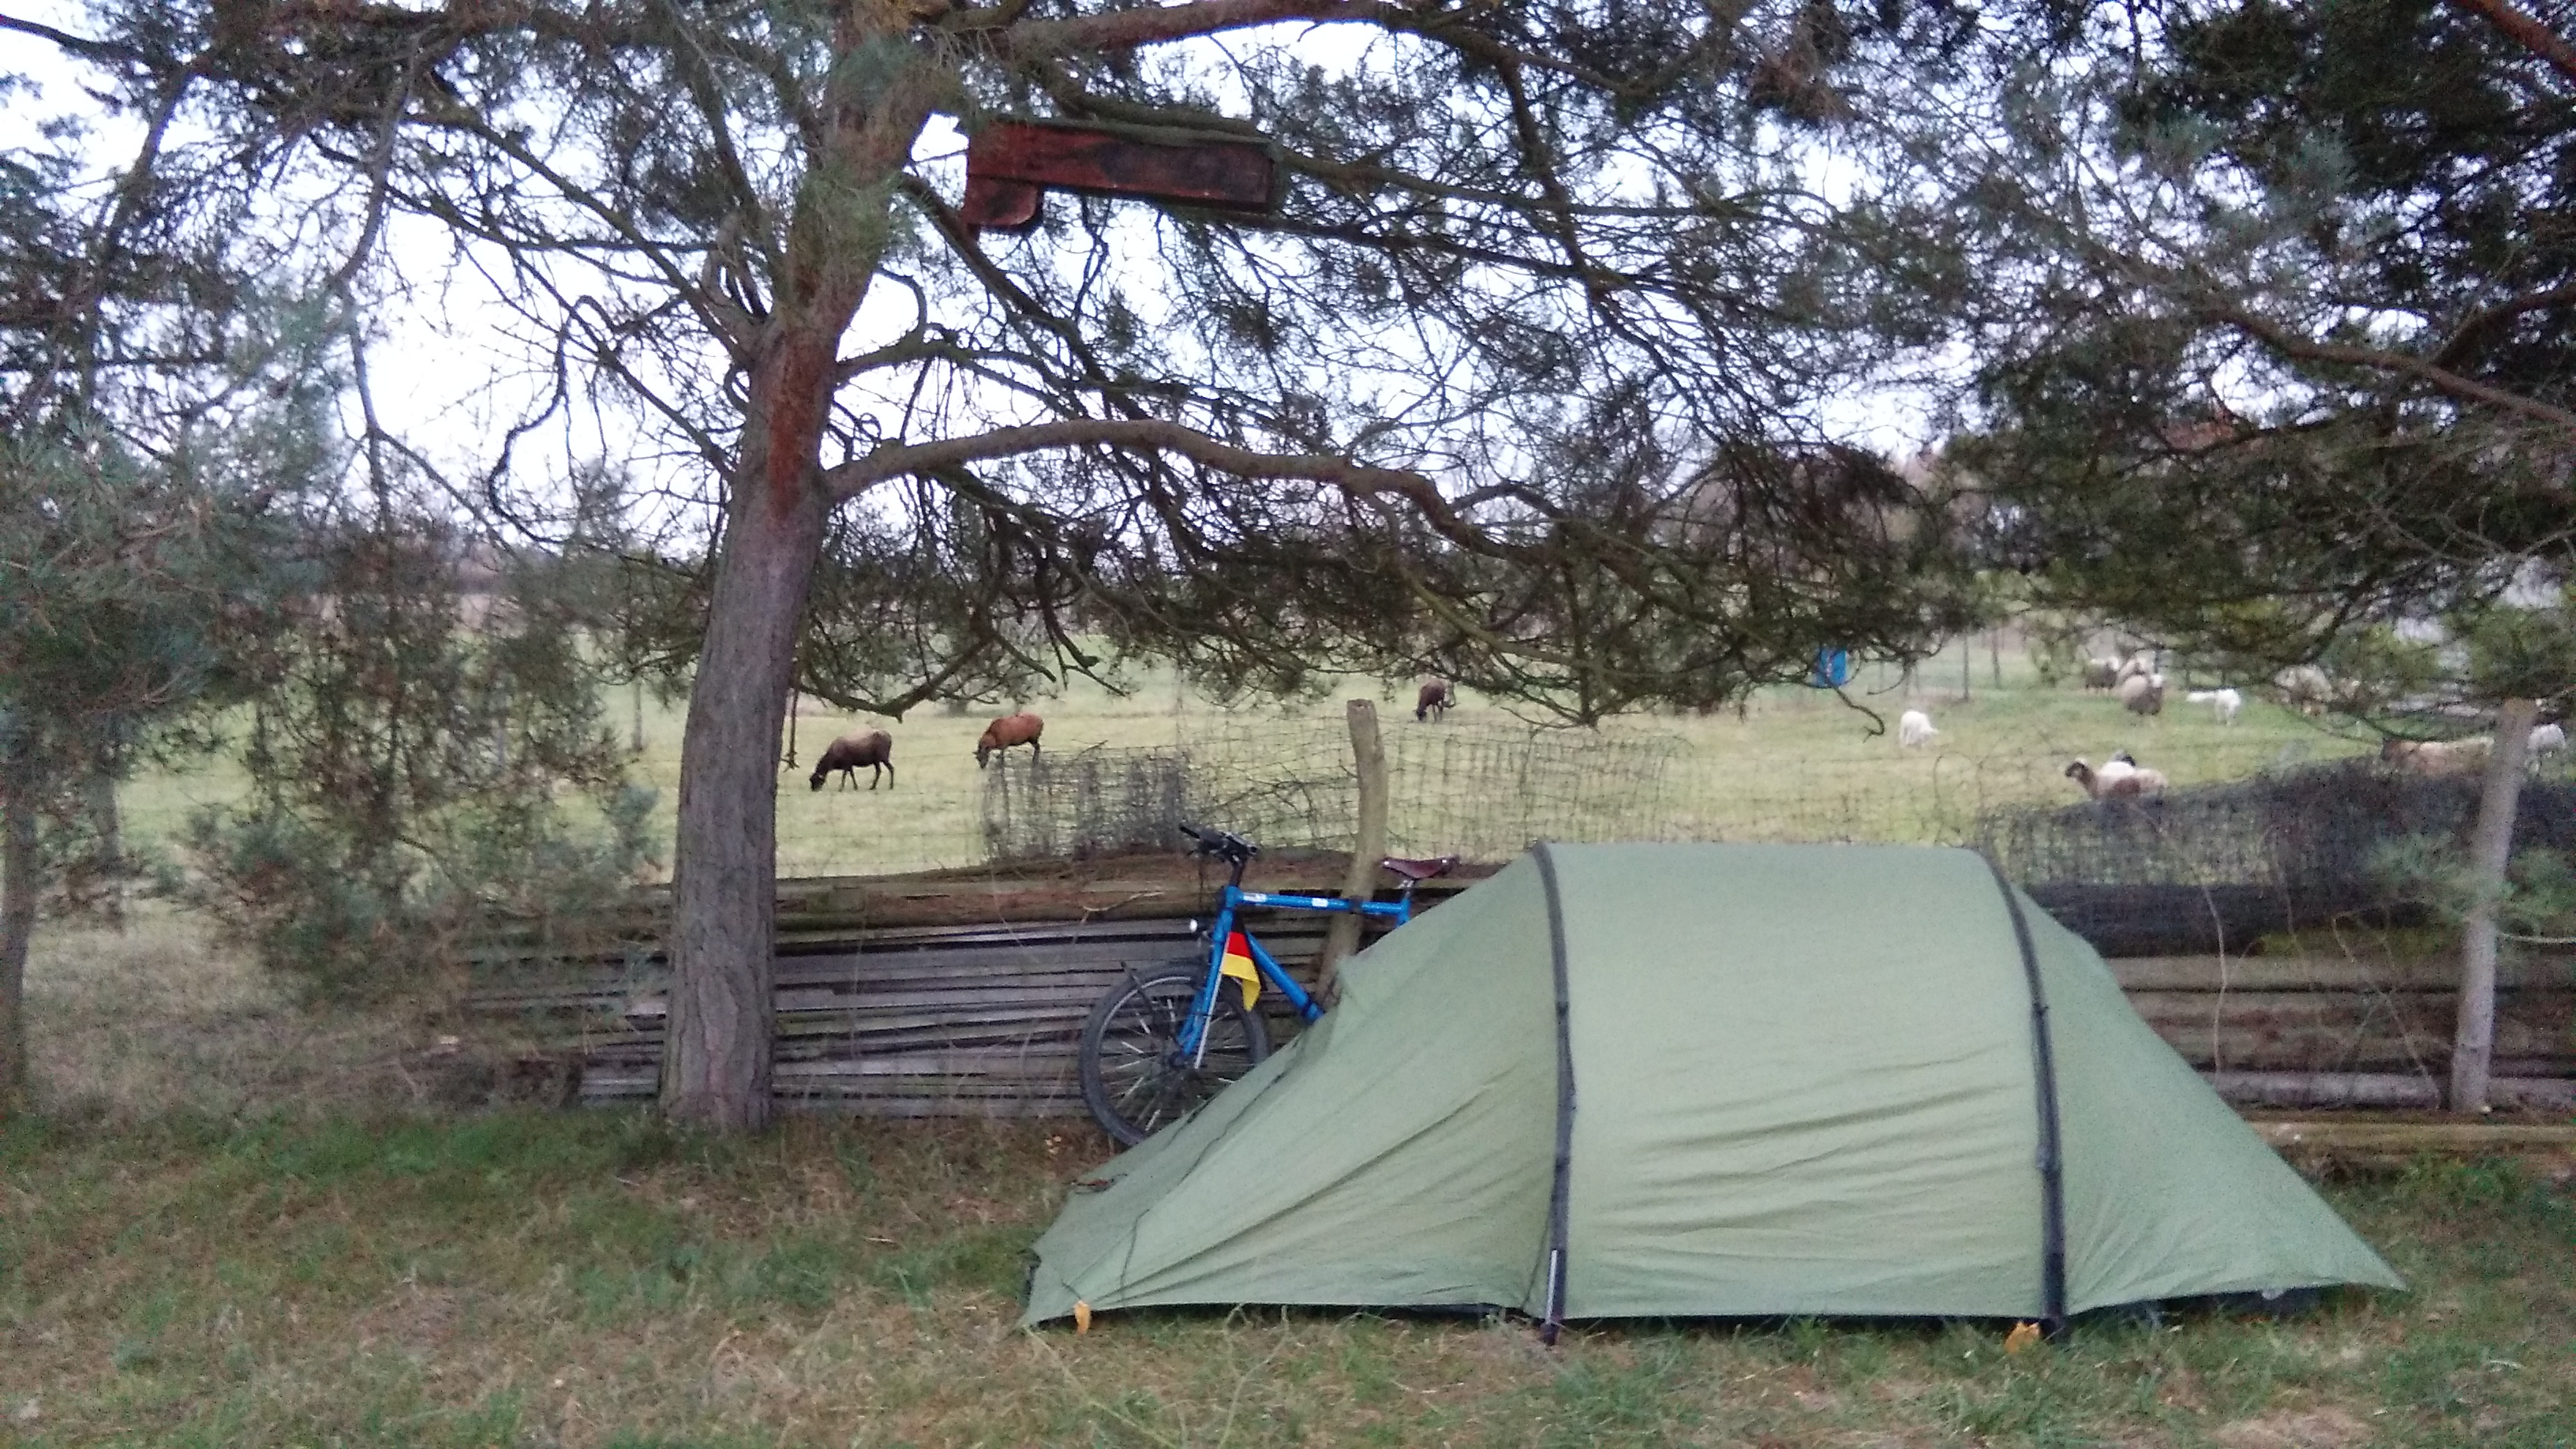 Last night in the tent. There were even some sheep behind the fence.